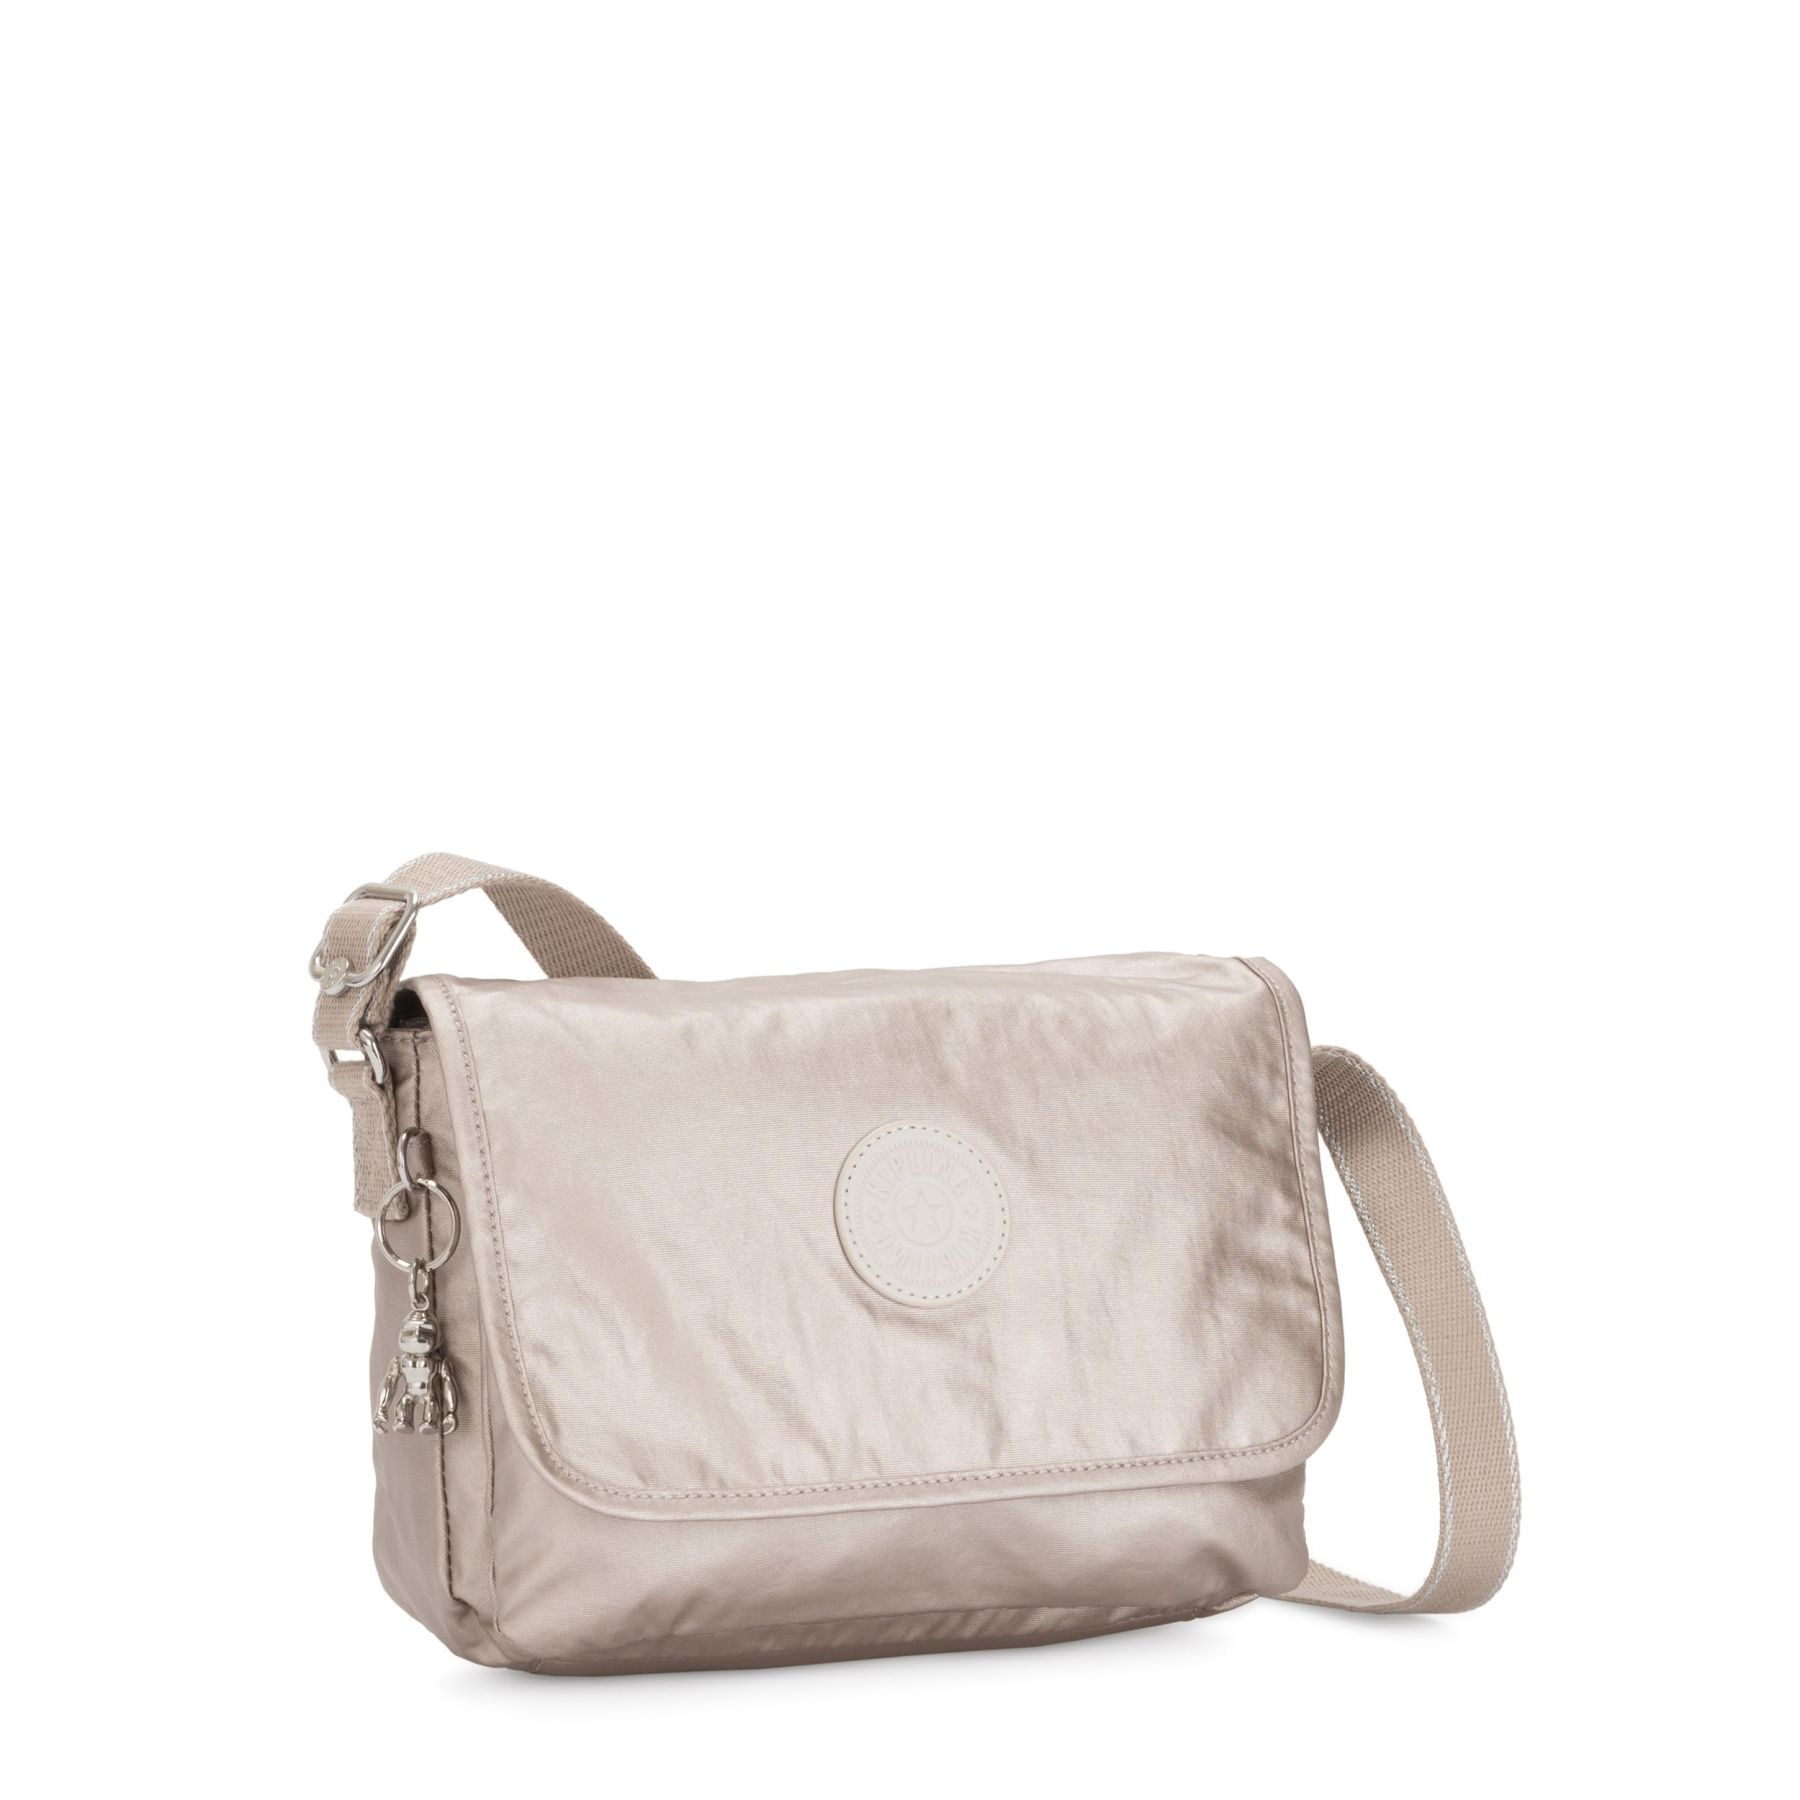 NITANY Latest Shoulder Bags by Kipling - view 4